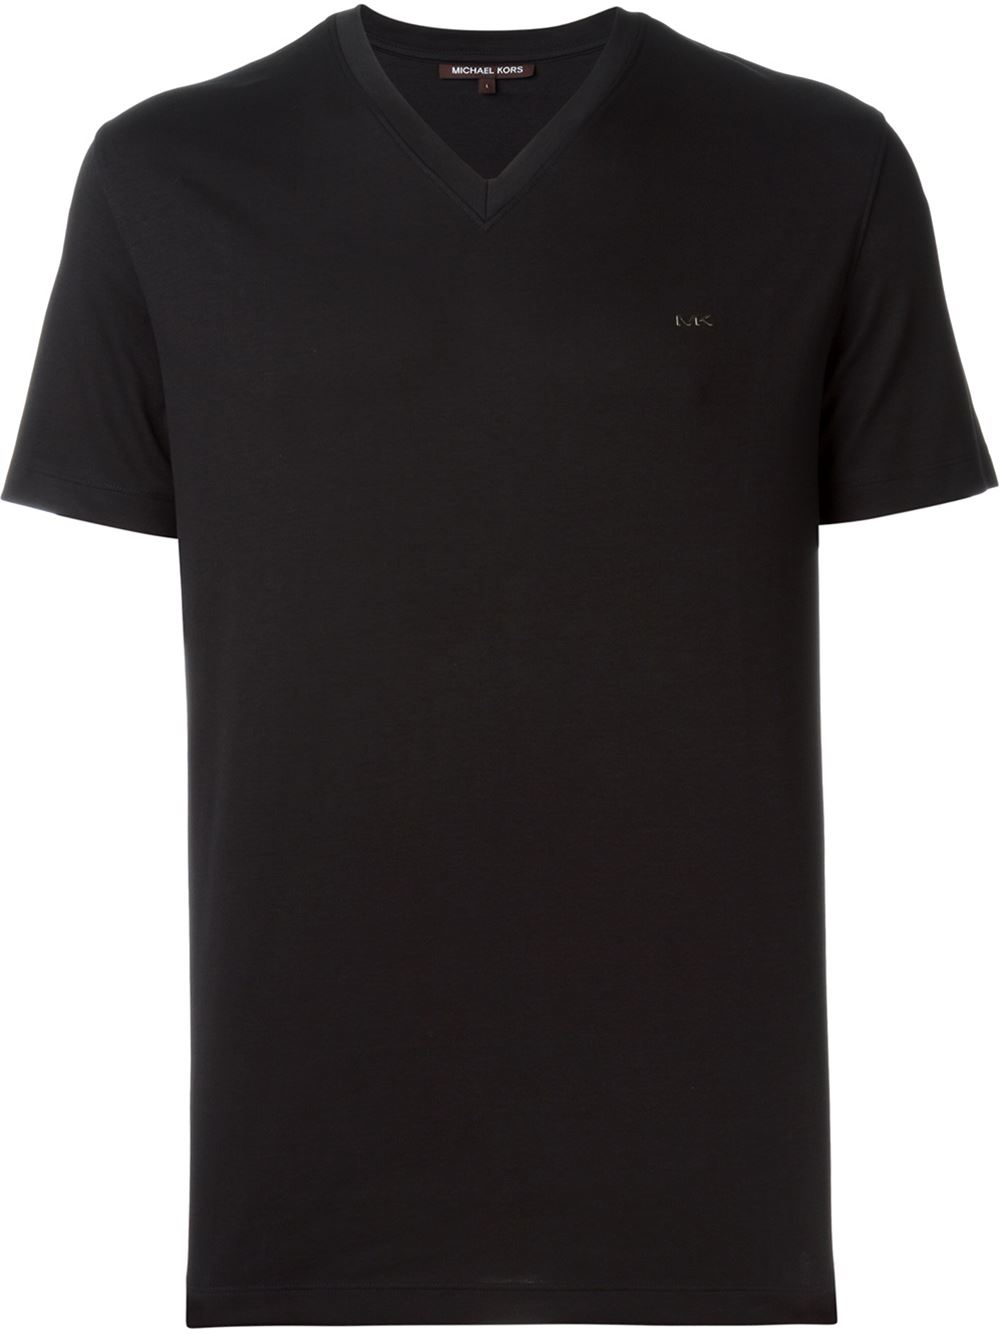 Michael kors v neck t shirt in black for men lyst V neck black t shirt